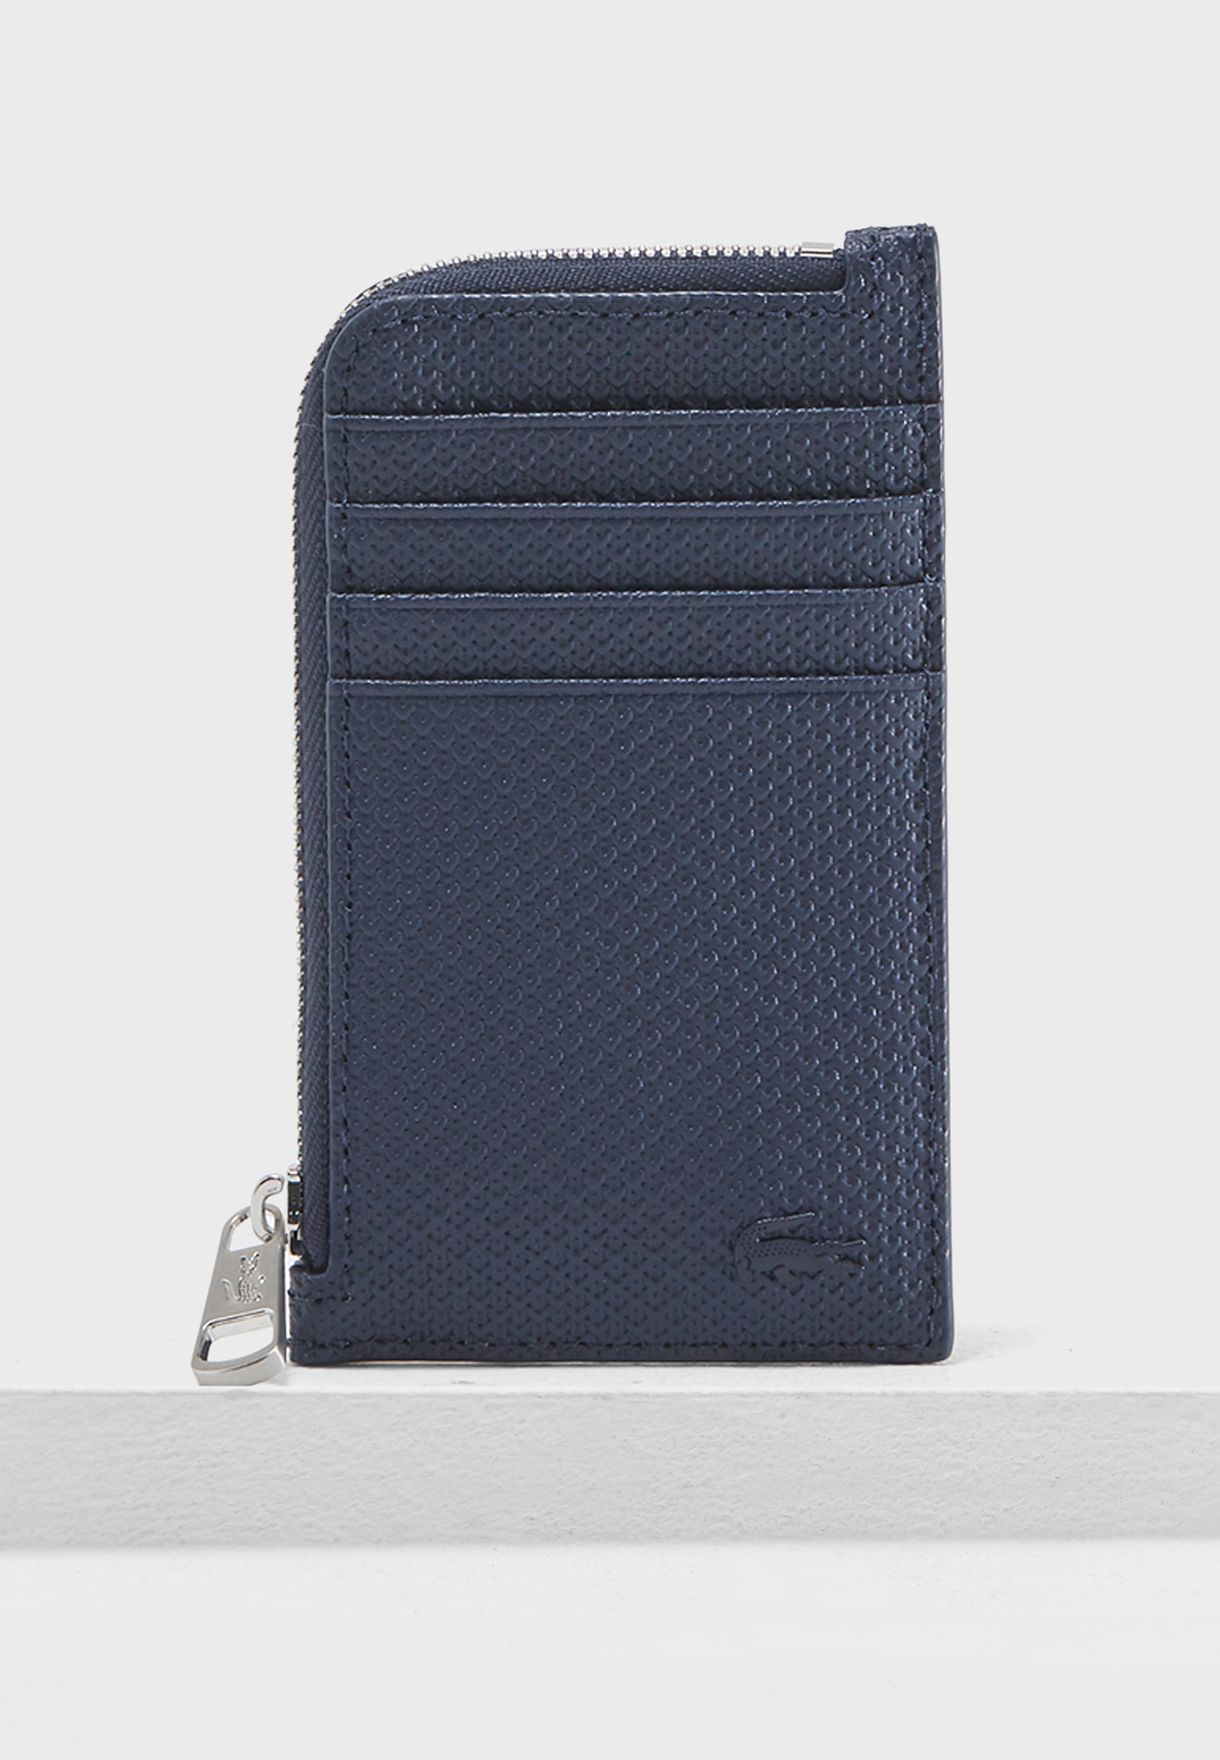 57e5b0c86 Shop Lacoste navy Leather Zip Around Wallet NH2293CE-021 for Men in ...